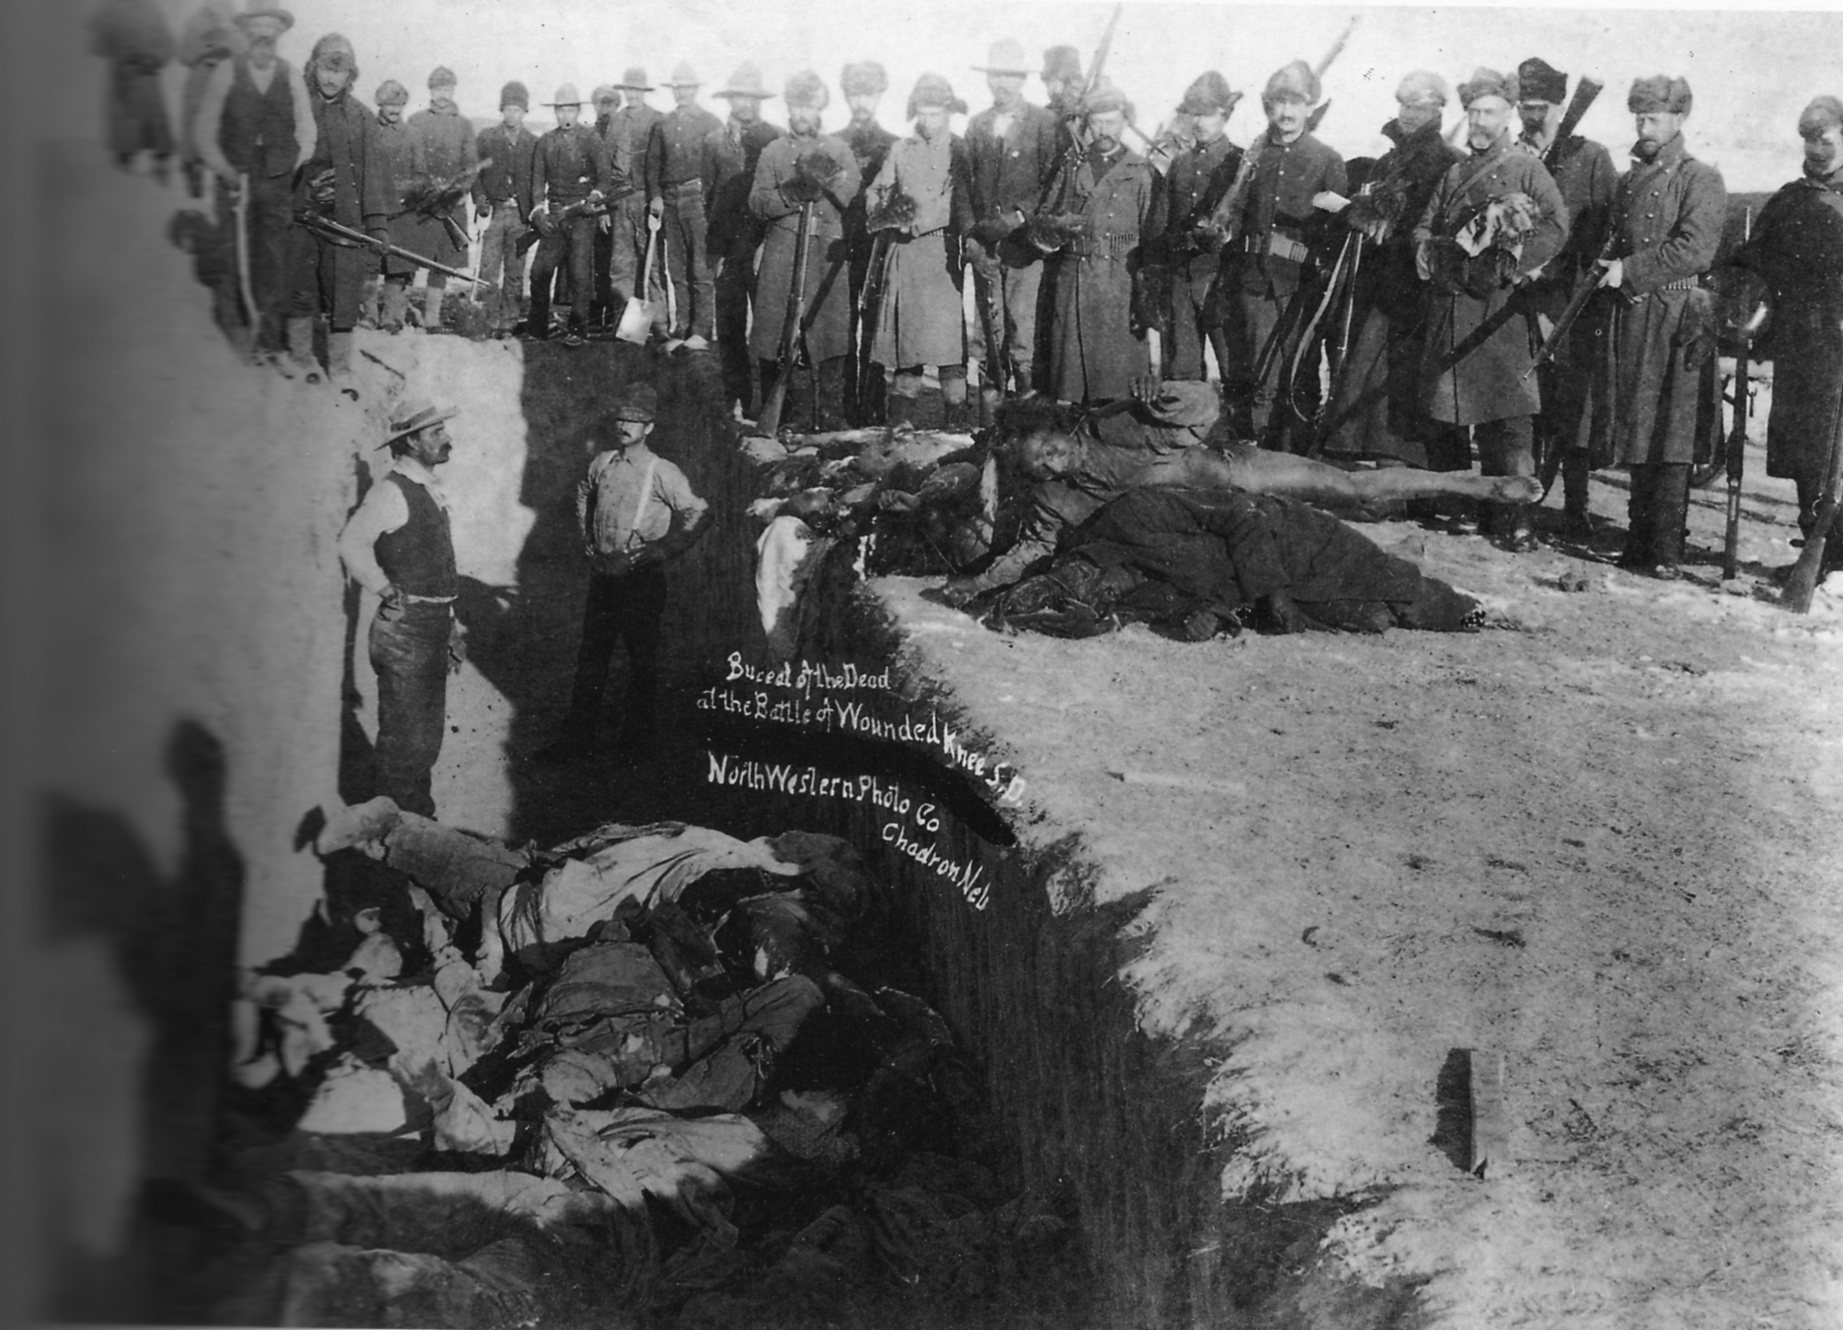 Mass burial by civilians hired by the military after the Wounded Knee Massacre